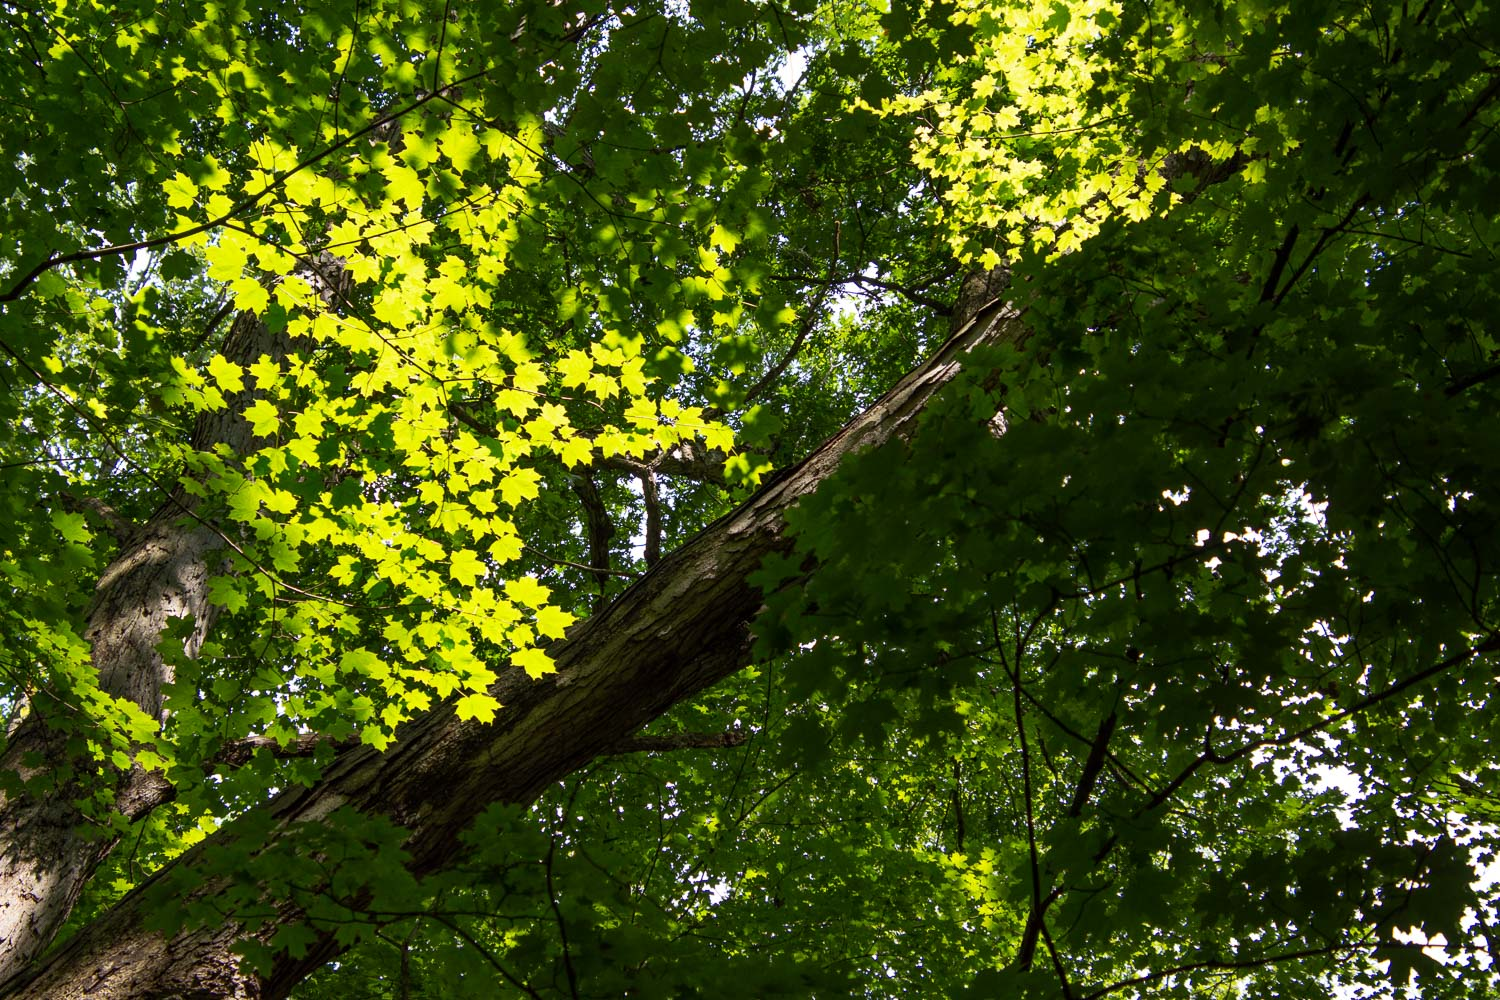 Forest trees in Cuyahoga Valley National Park